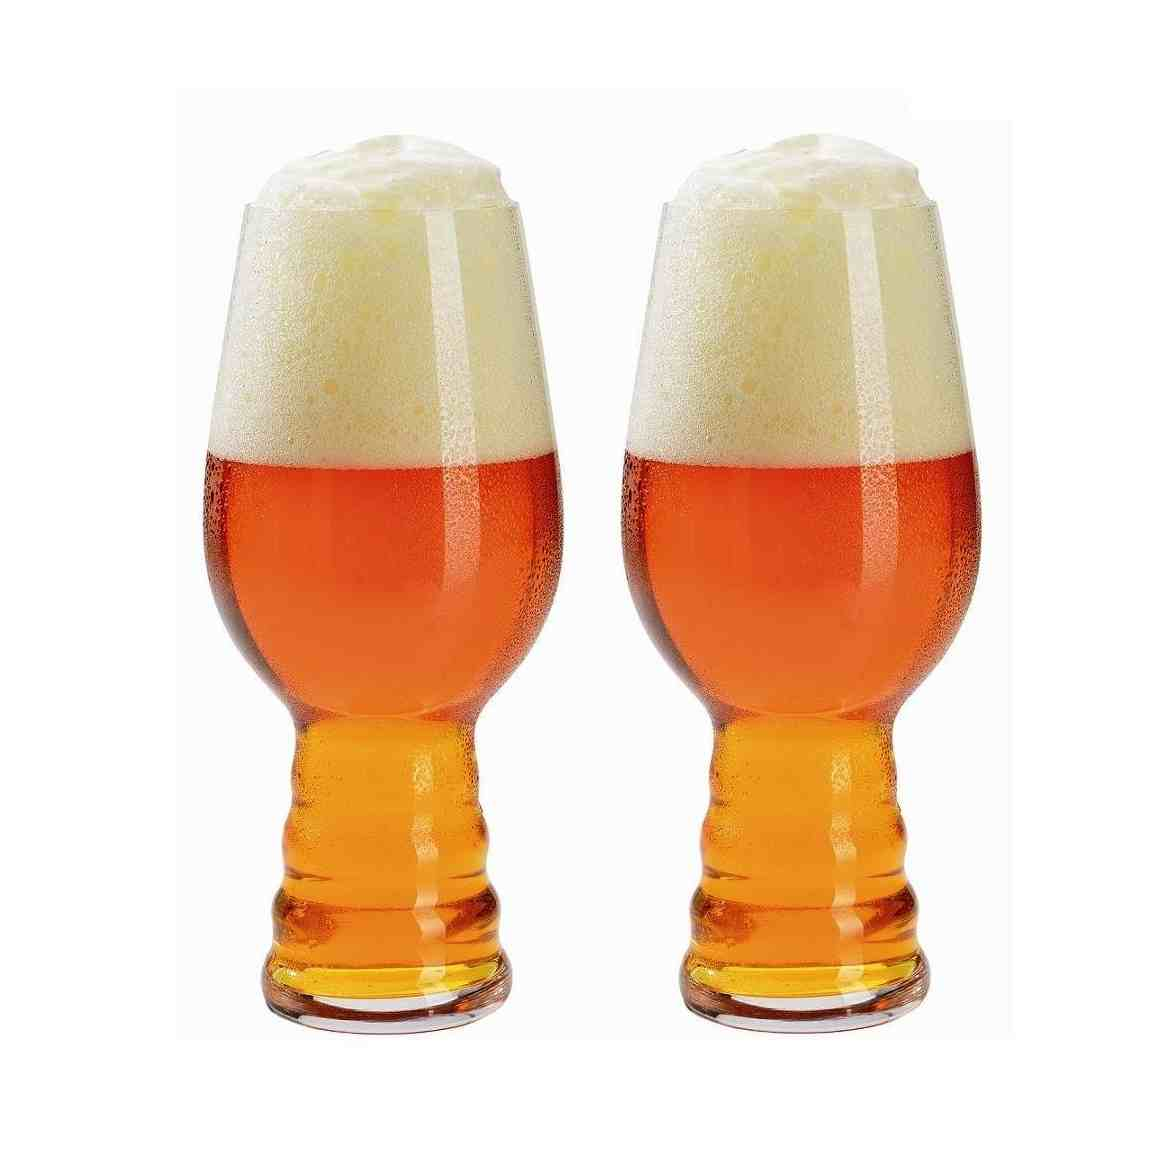 Spiegelau IPA Glasses - Set of 2